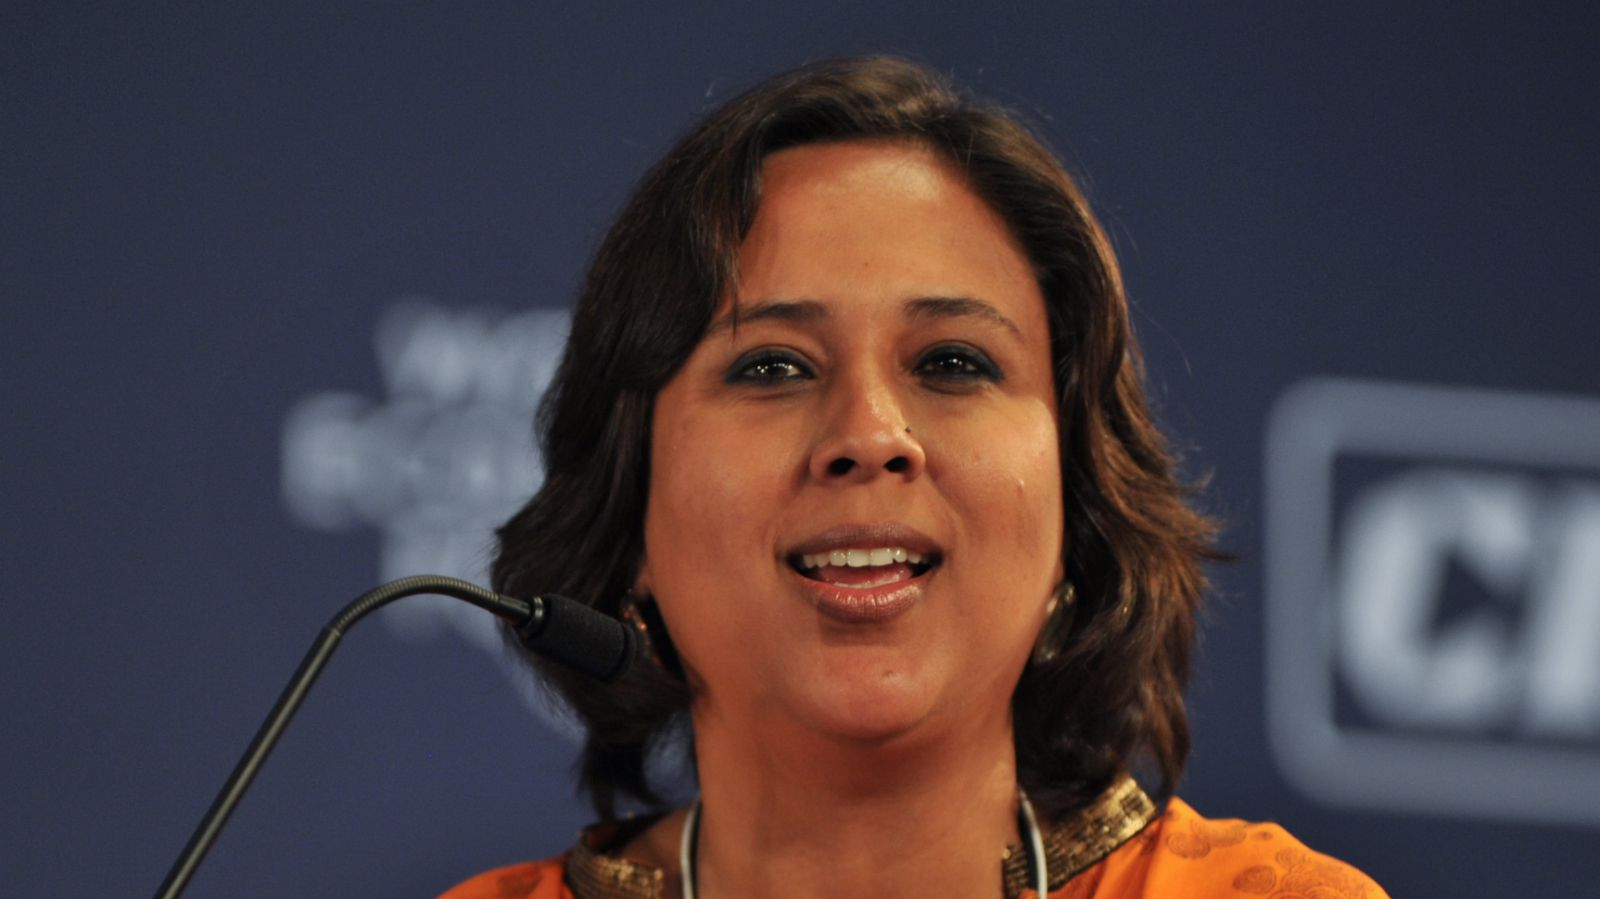 Barkha Dutt, Editor, English News, New Delhi Television (NDTV), India, Young Global Leader, during the Closing Plenary; From Delhi To Davos: The Road to Inclusive Growth at the World Economic Forum's India Economic Summit 2010 held in New Delhi.